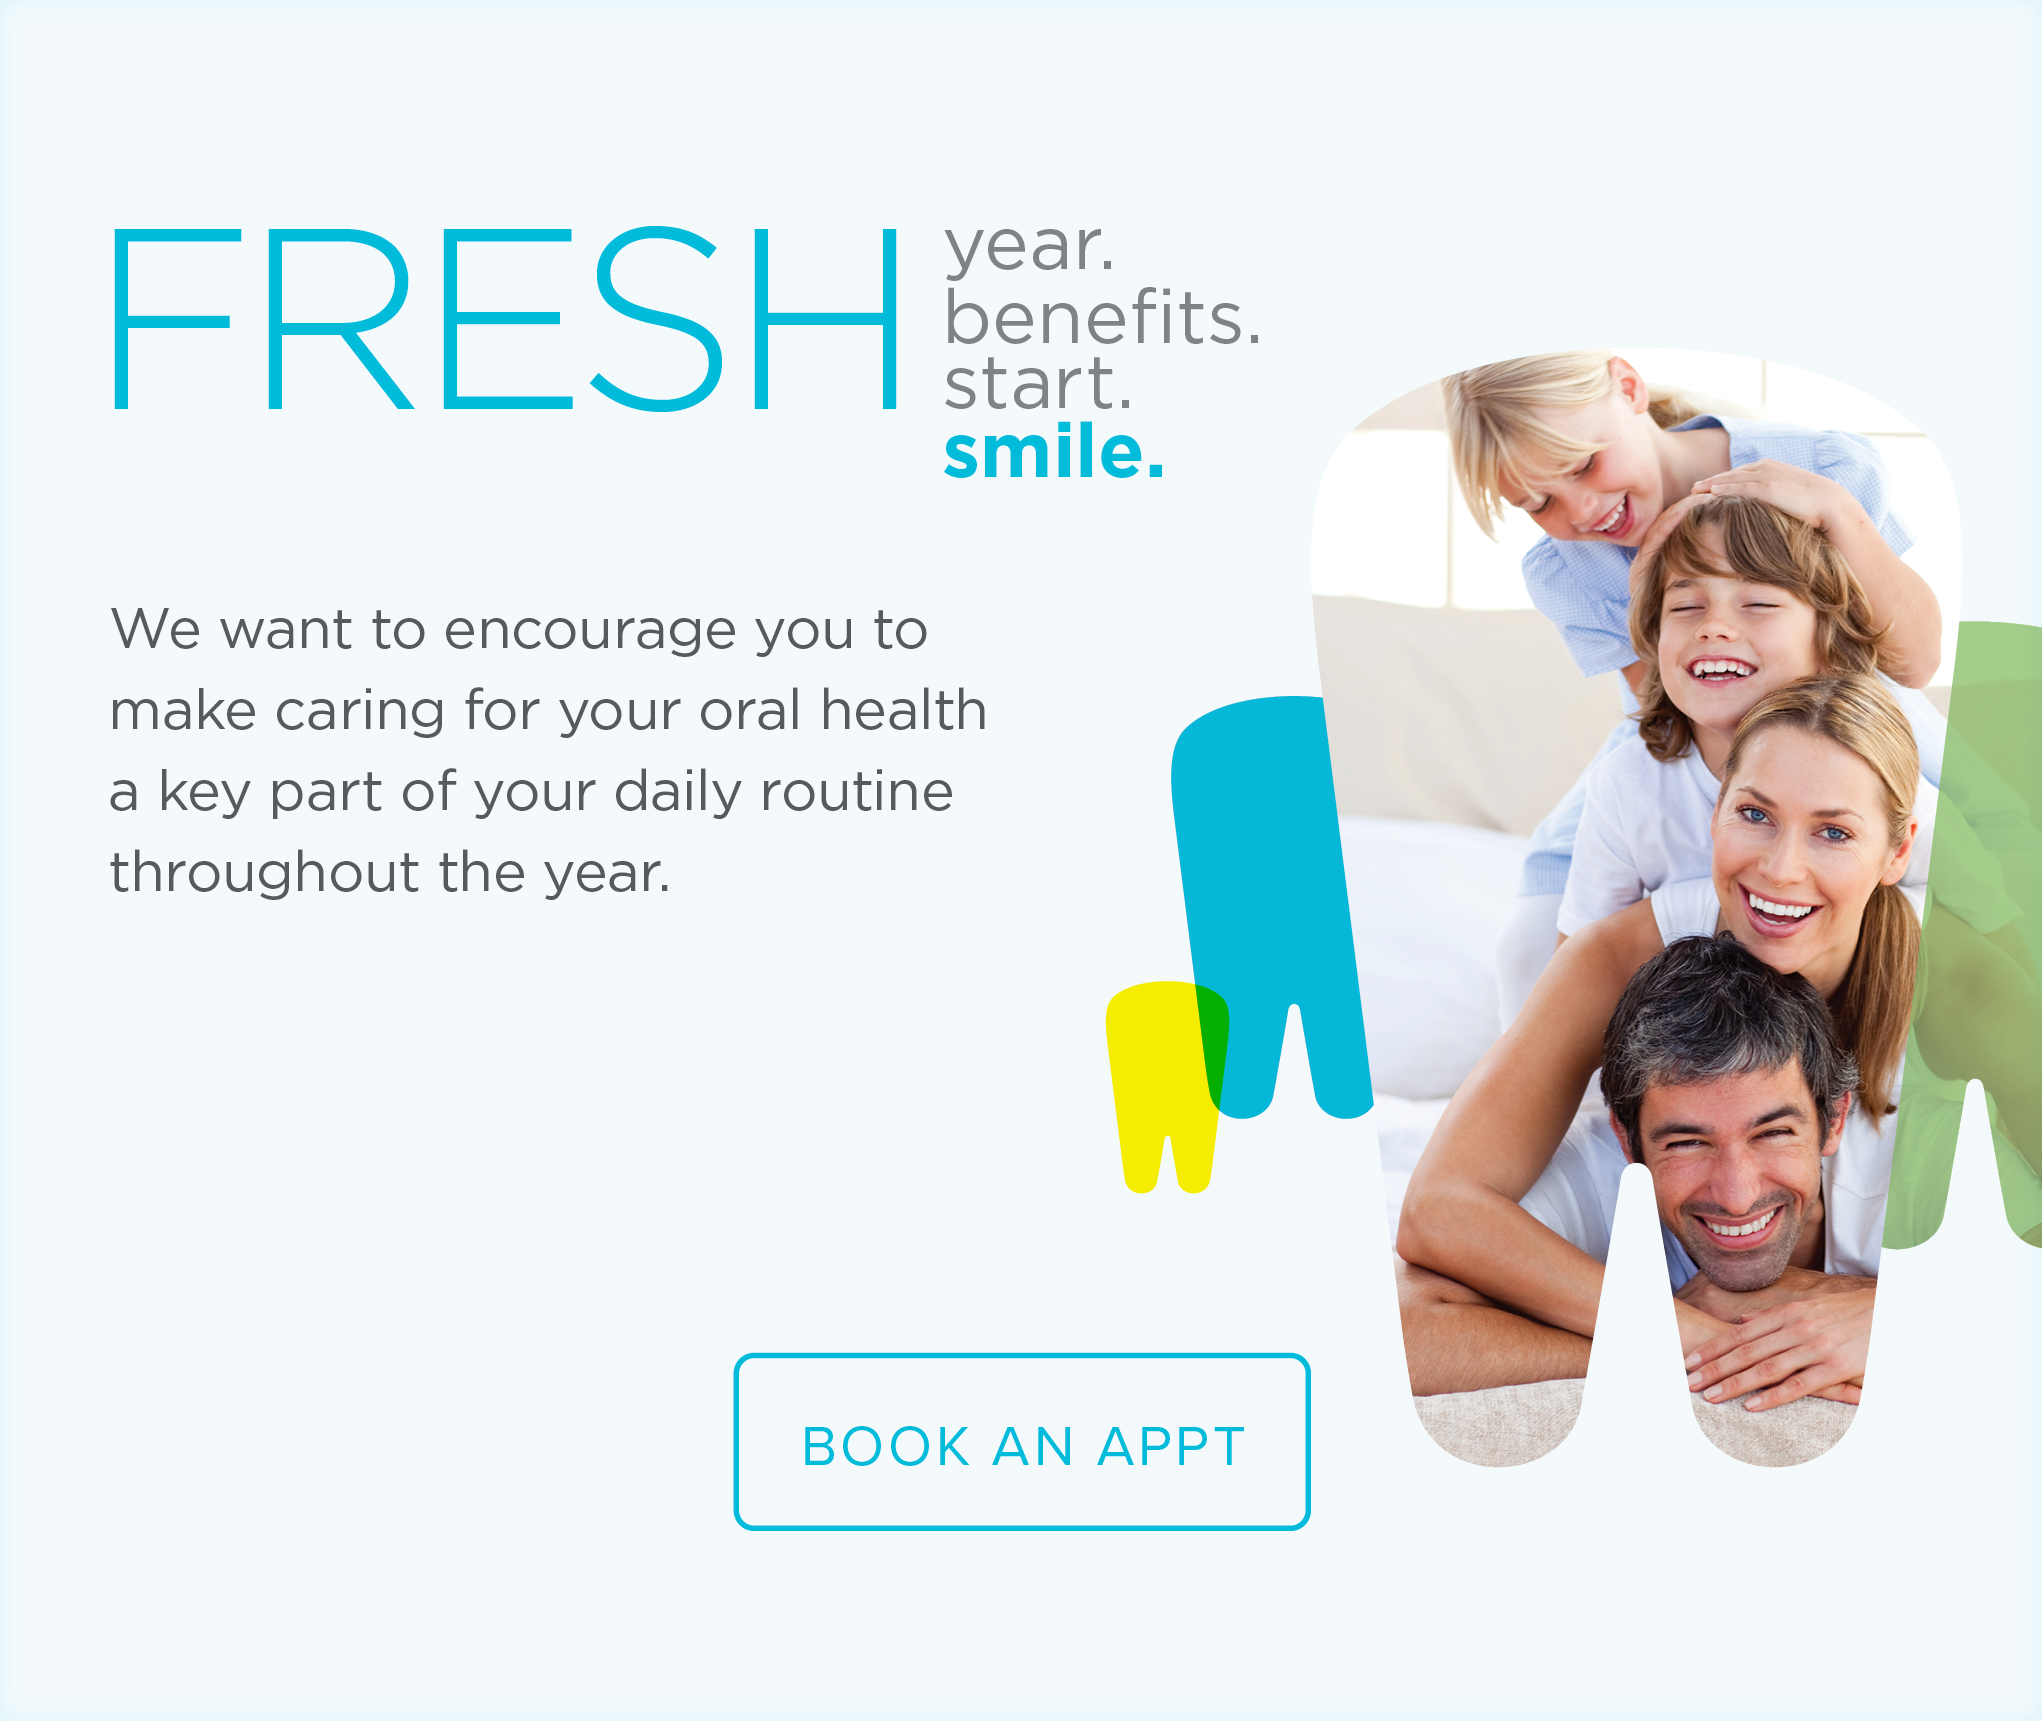 Oakland Park  Modern Dentistry - Make the Most of Your Benefits